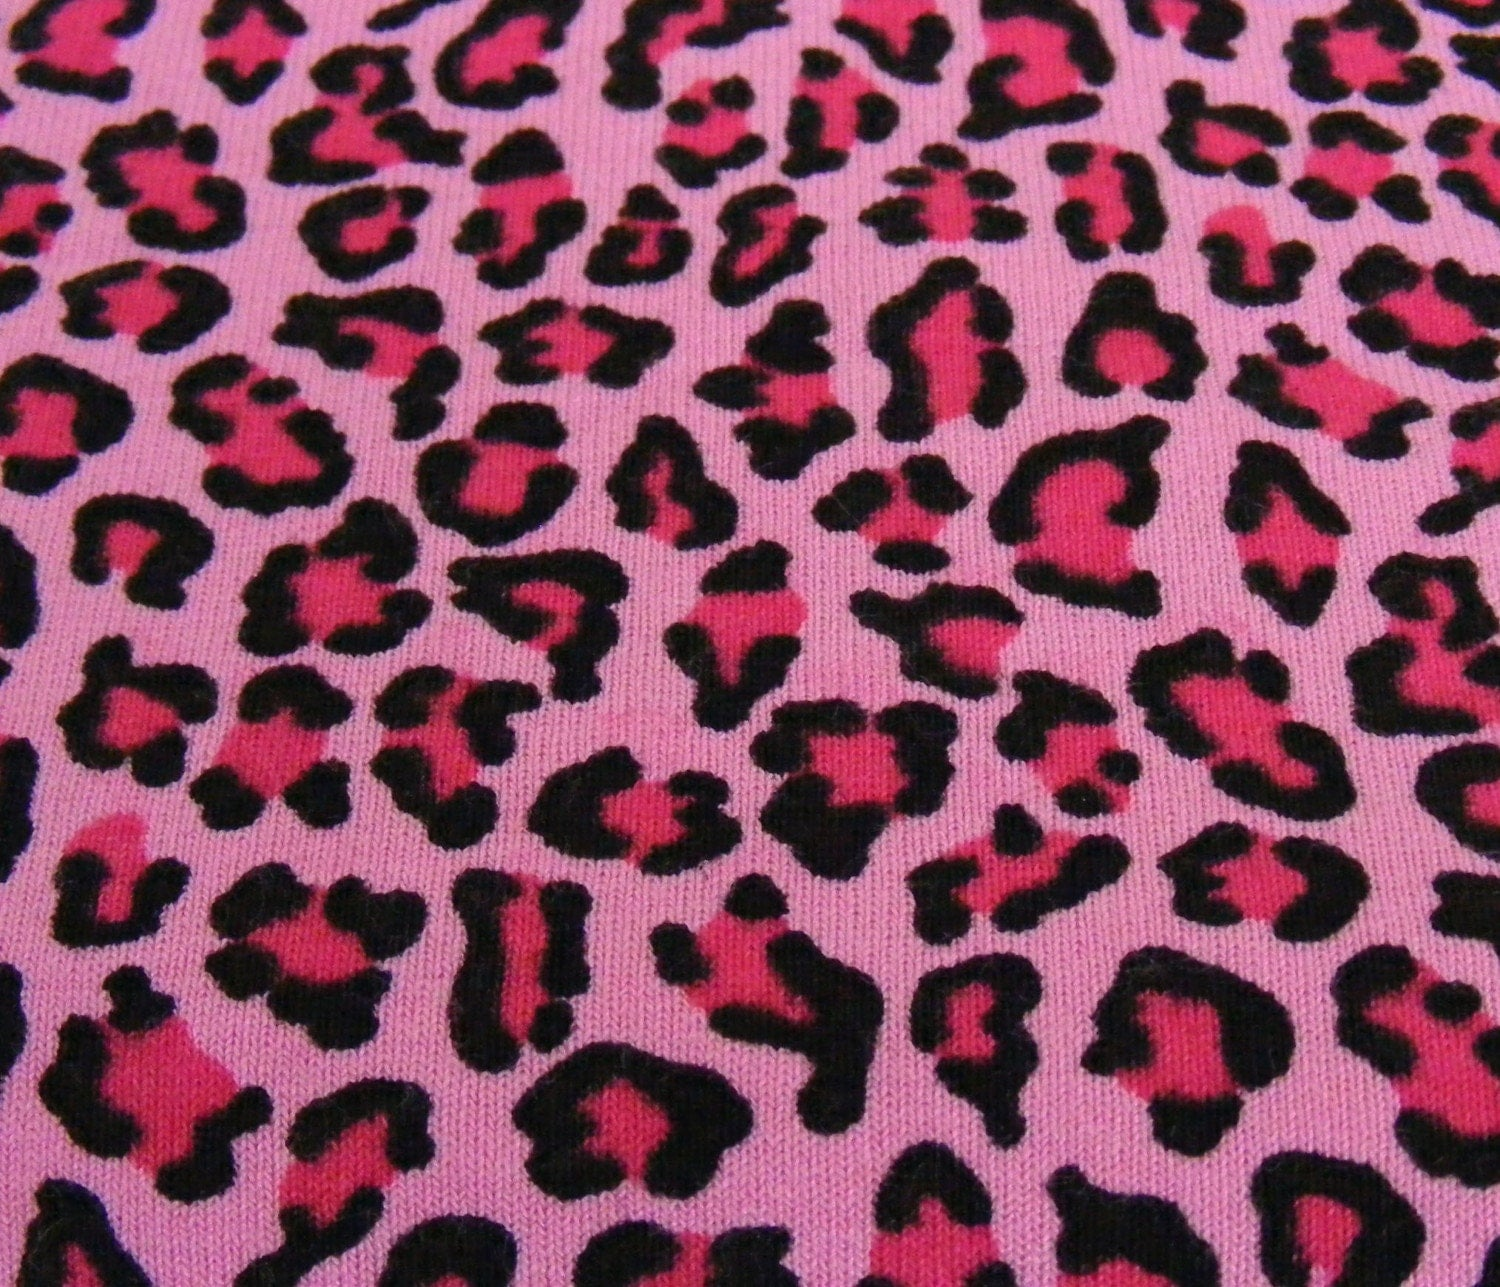 Light pink cheetah print background - photo#38